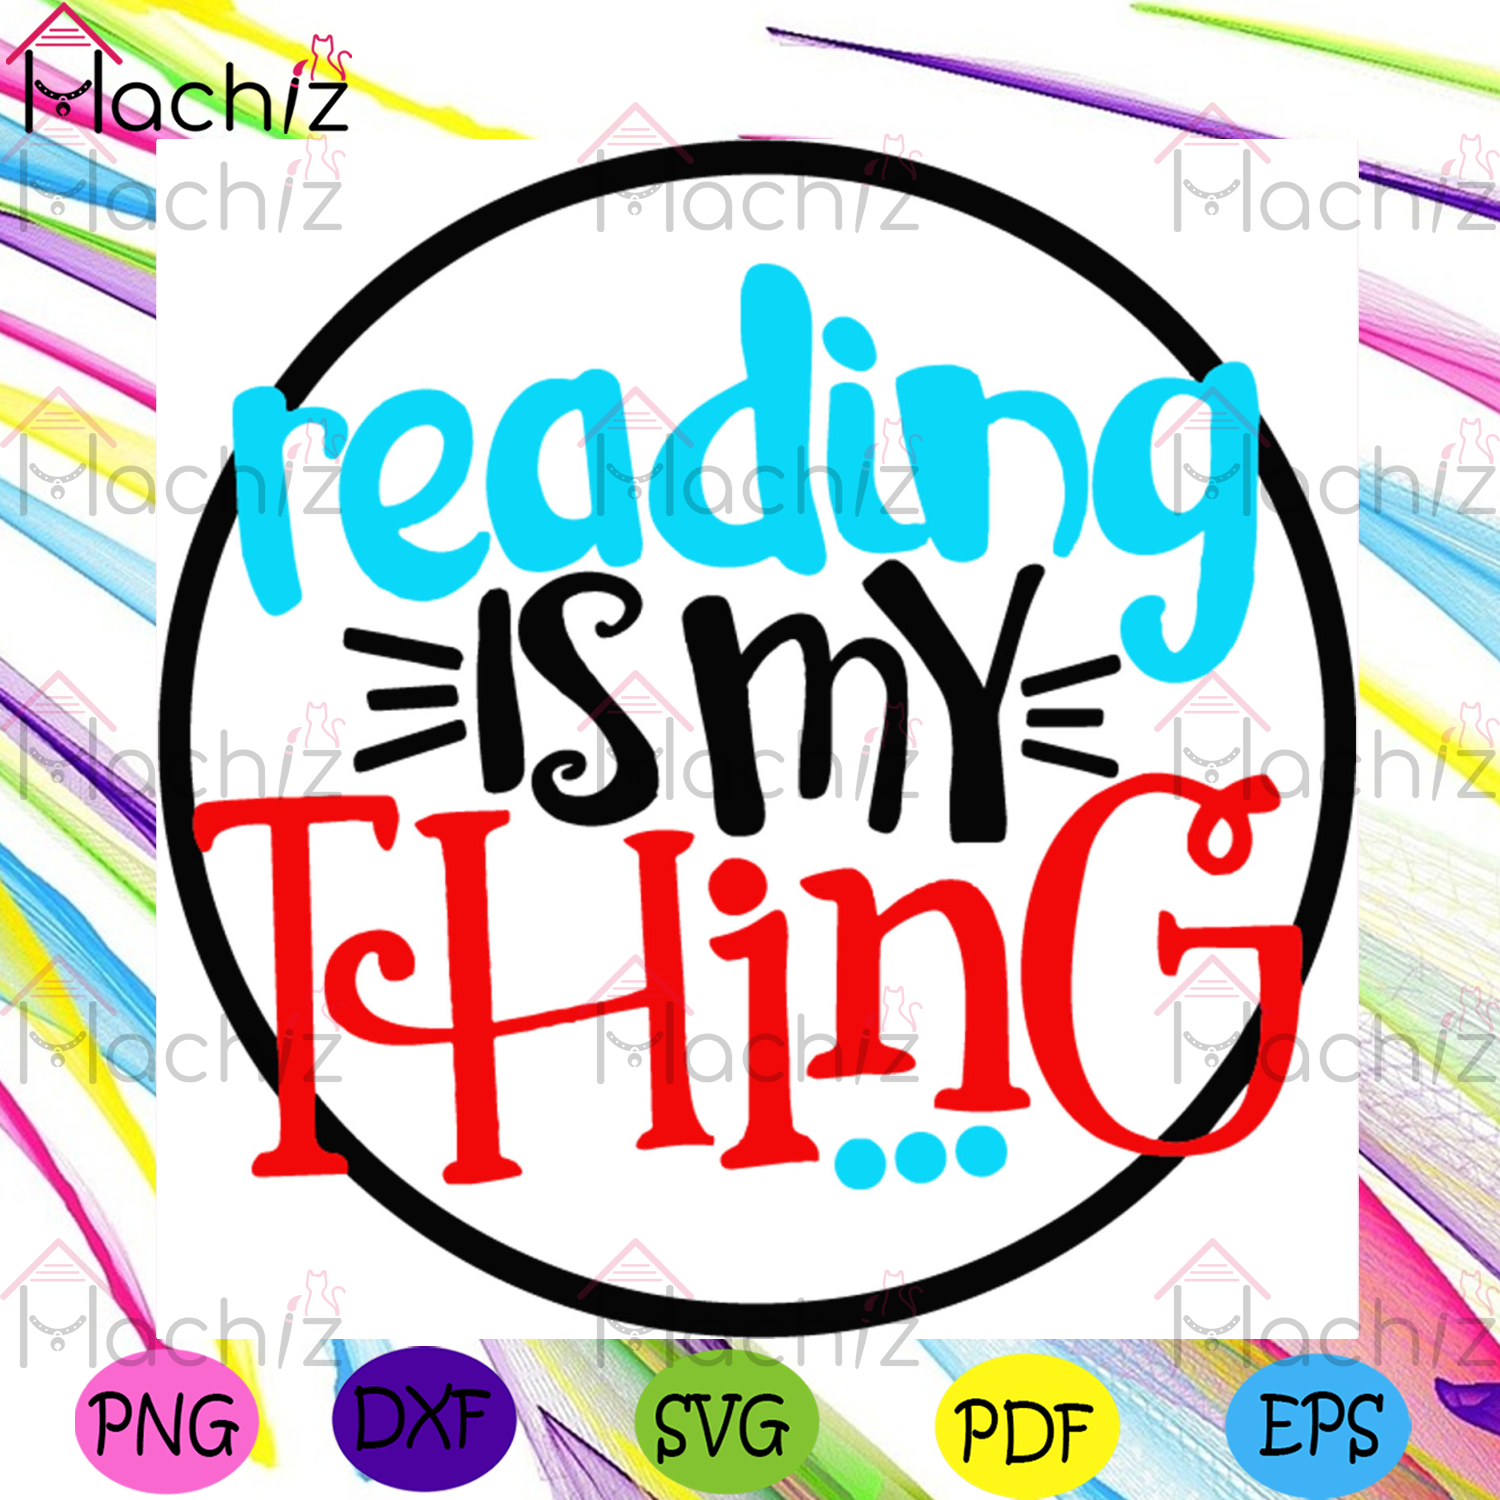 Reading Is My Thing Svg, Trending Svg, Dr Seuss Svg, Dr Seuss Gift Svg, Dr Seuss Thing Svg, Thing 1 Svg, Thing 2 Svg, Reading Svg, Reading Lovers Svg, I Am Sam Svg, Grinch Svg, Dr Seuss Teacher Svg, De Seuss Quotes Svg,